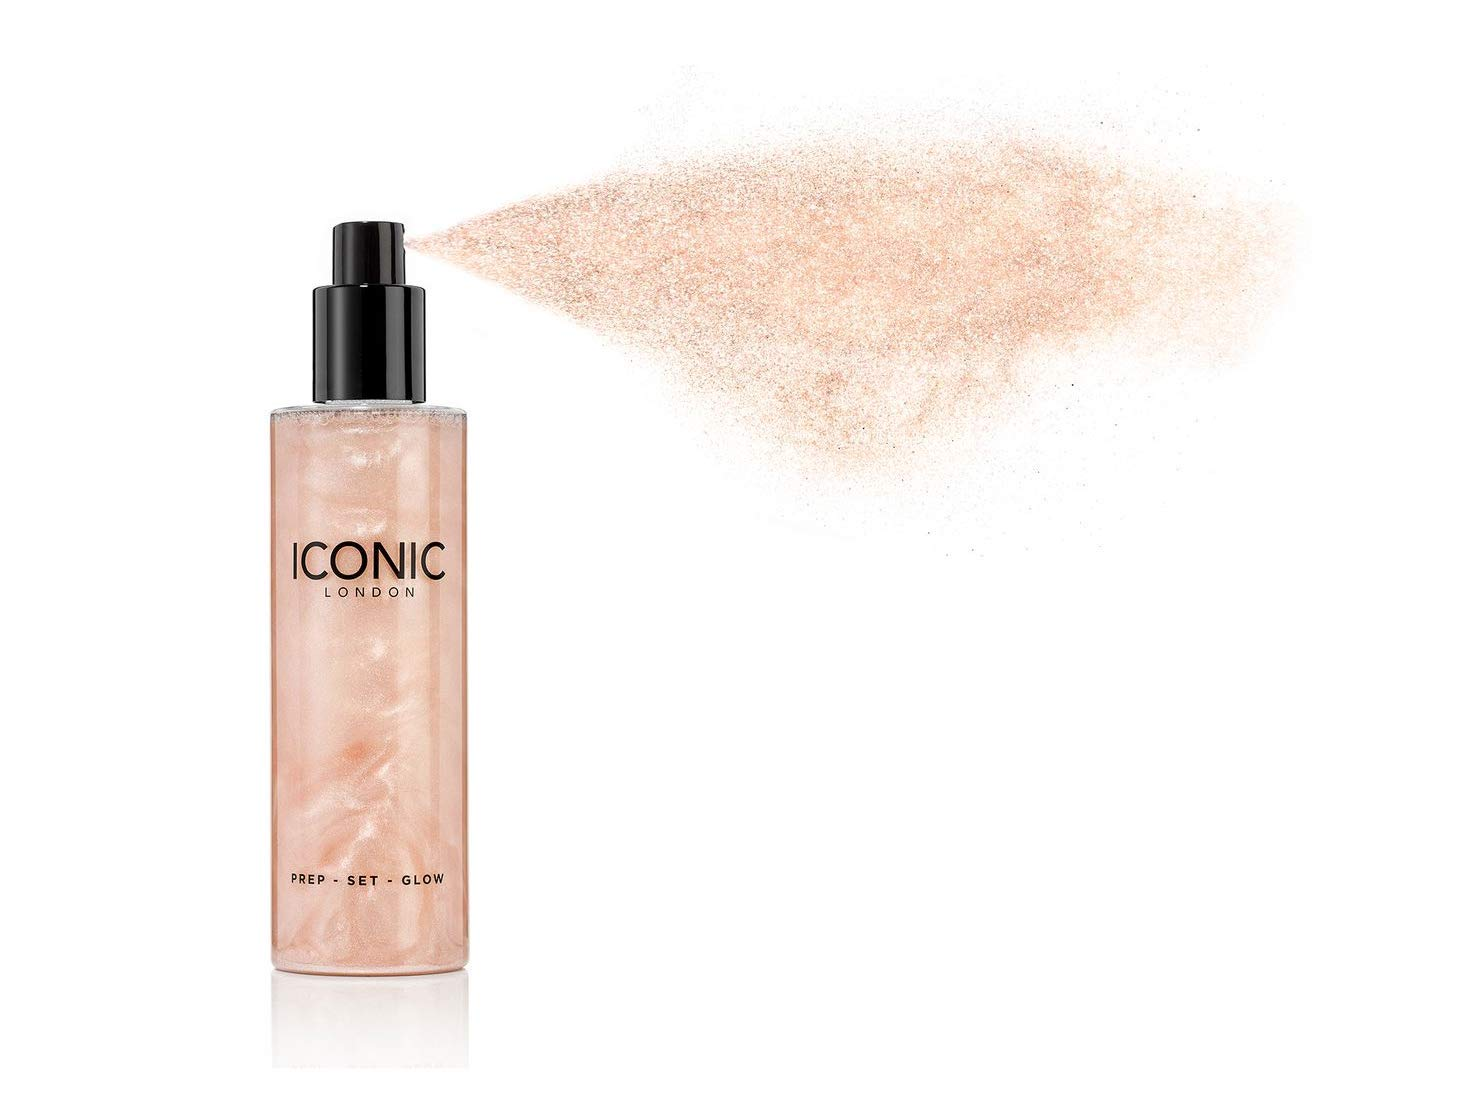 ICONIC LONDON Prep-Set-Glow(120ml) - ORIGINAL